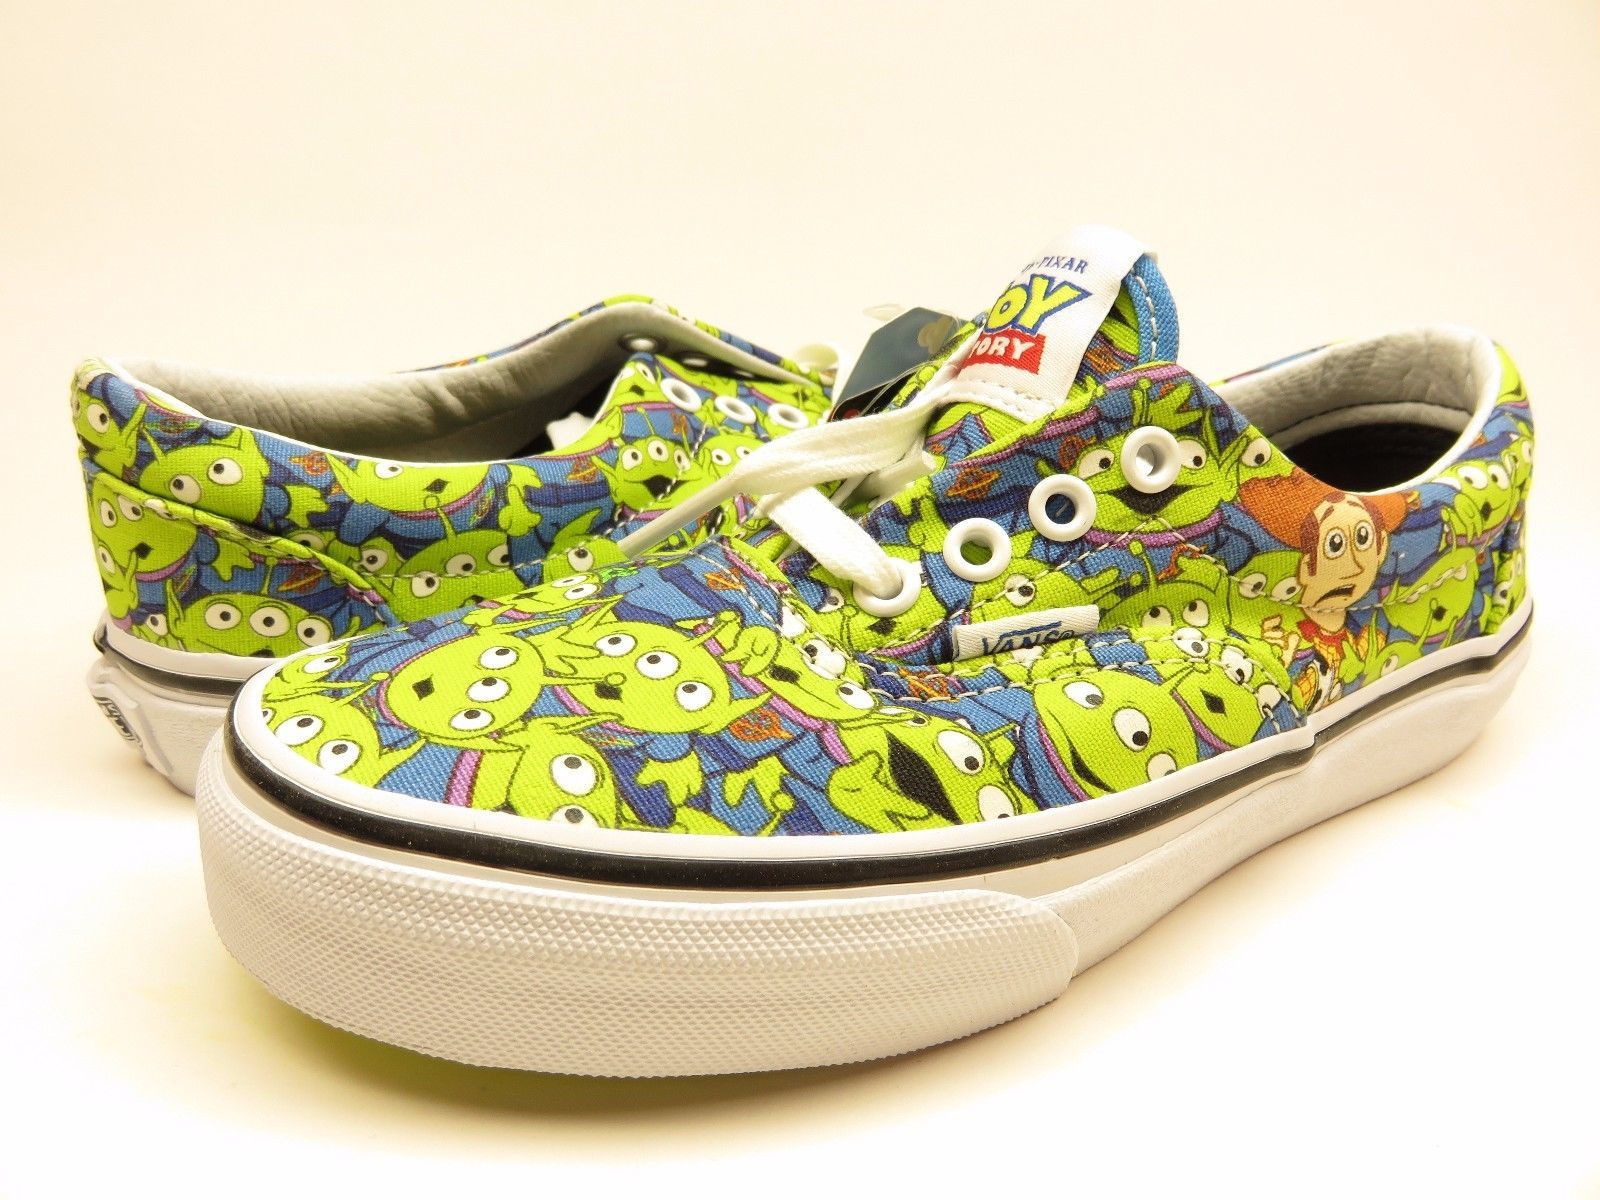 e0c39508f88 S l1600. S l1600. Previous. VANS AUTHENTIC TOY STORY ALIENS GLOW IN THE  DARK SKATEBOARDING SHOE ...